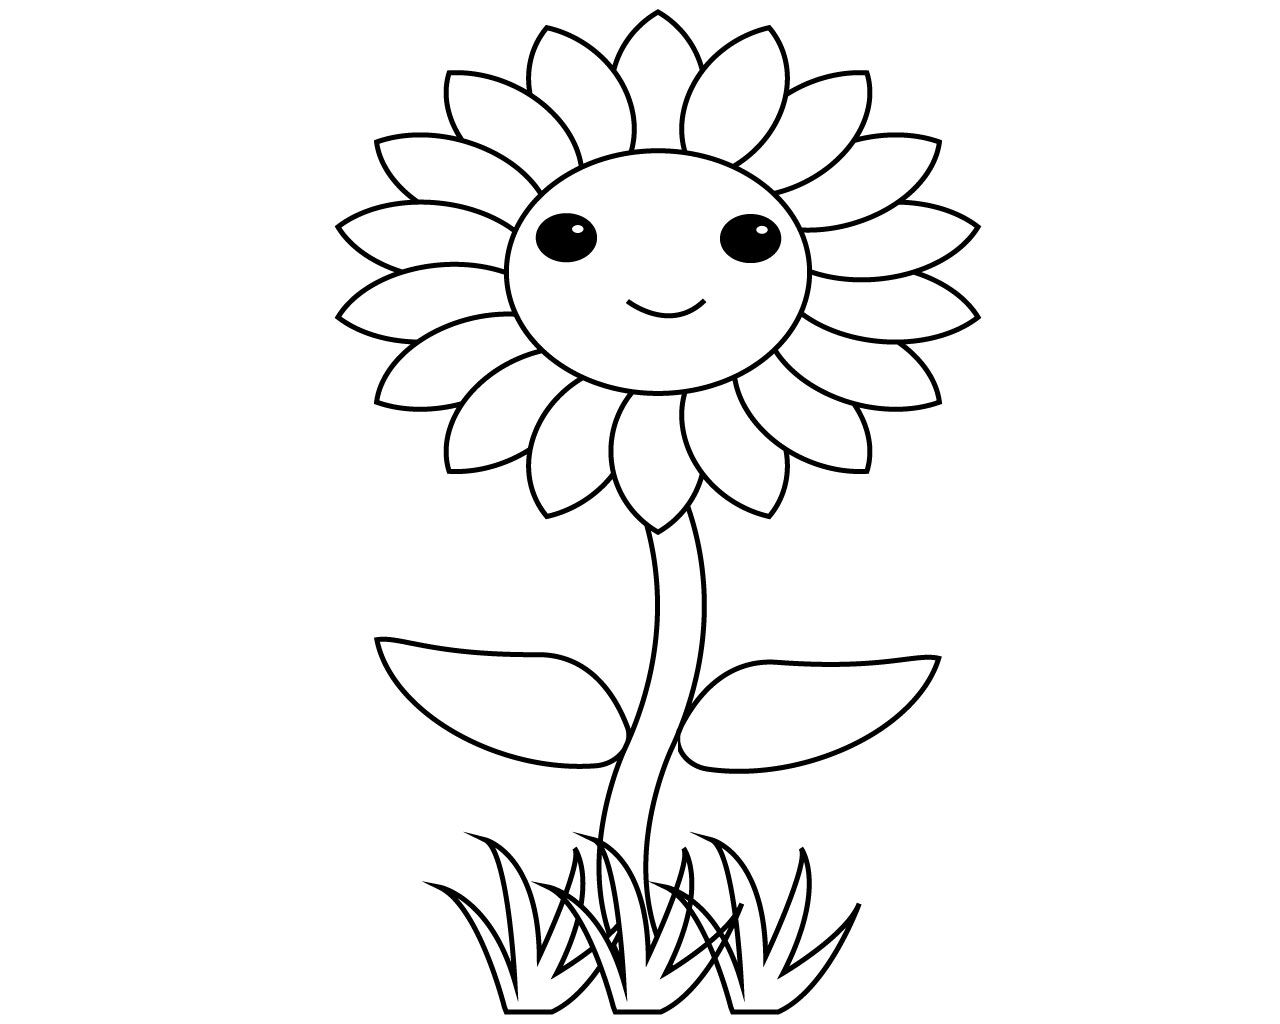 Best Simple Flower Coloring Pages To Print Coloring Pages To